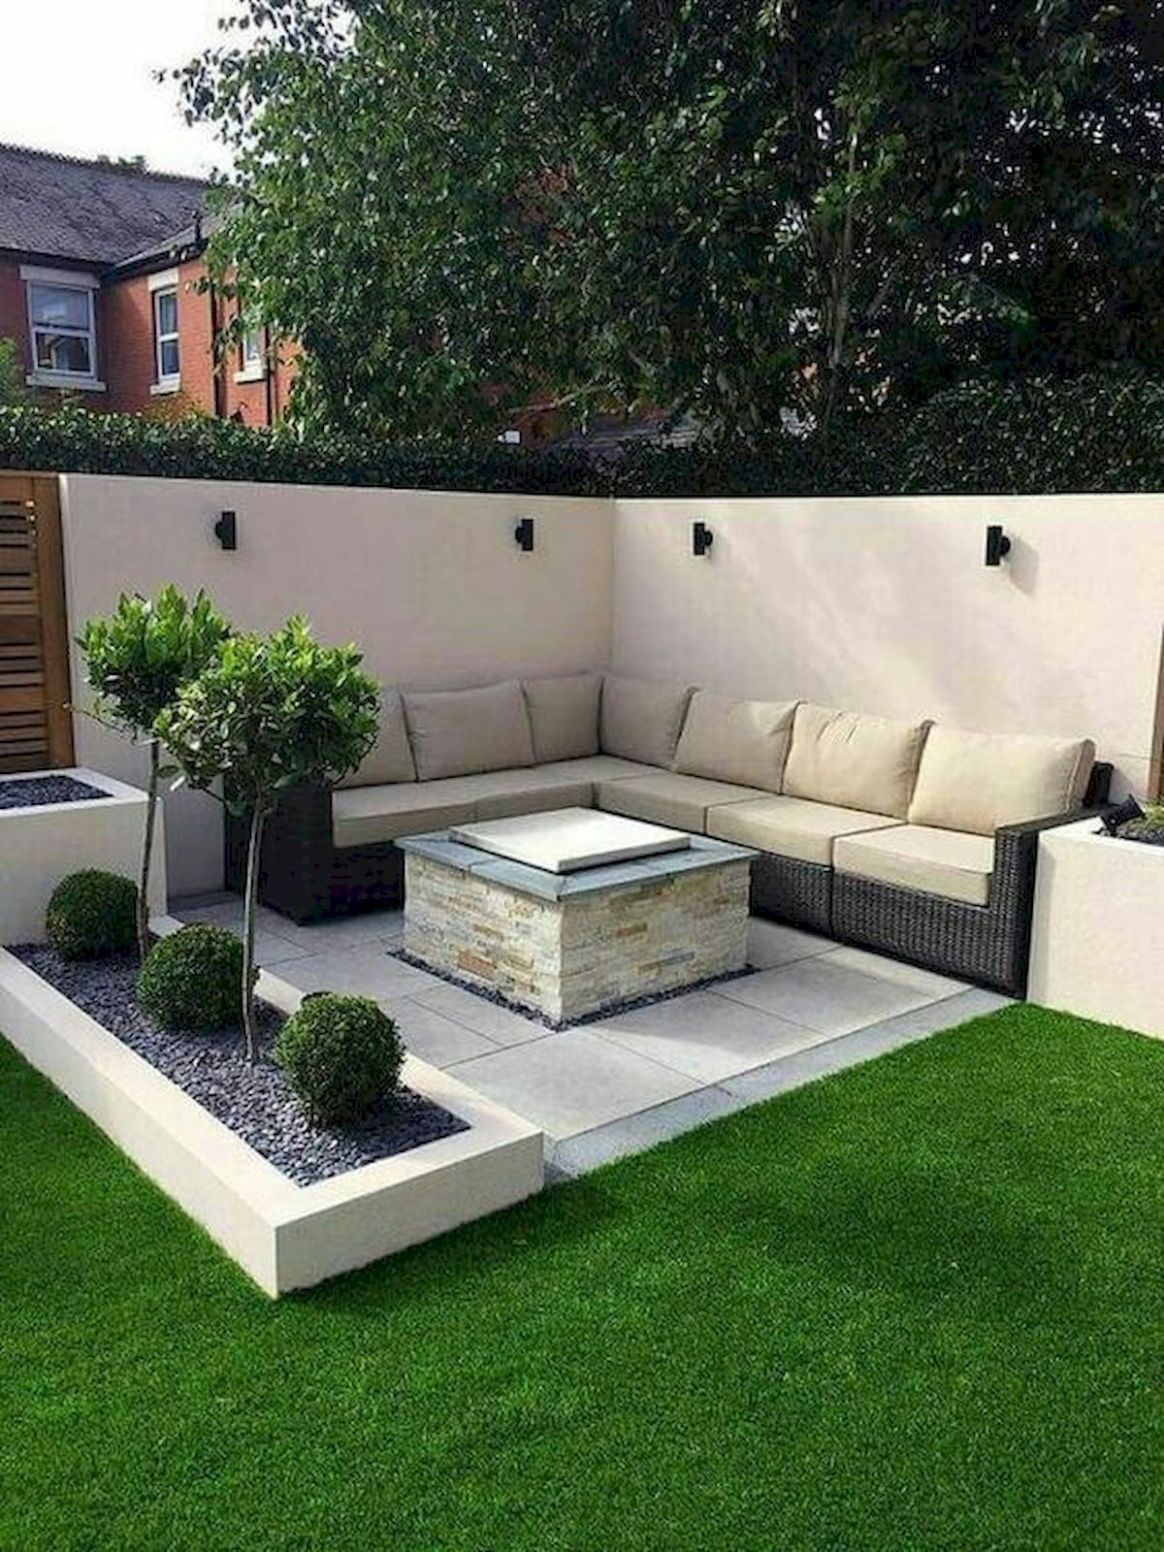 Easy Clever Gardening Ideas And Plant for Small Space On Low ..